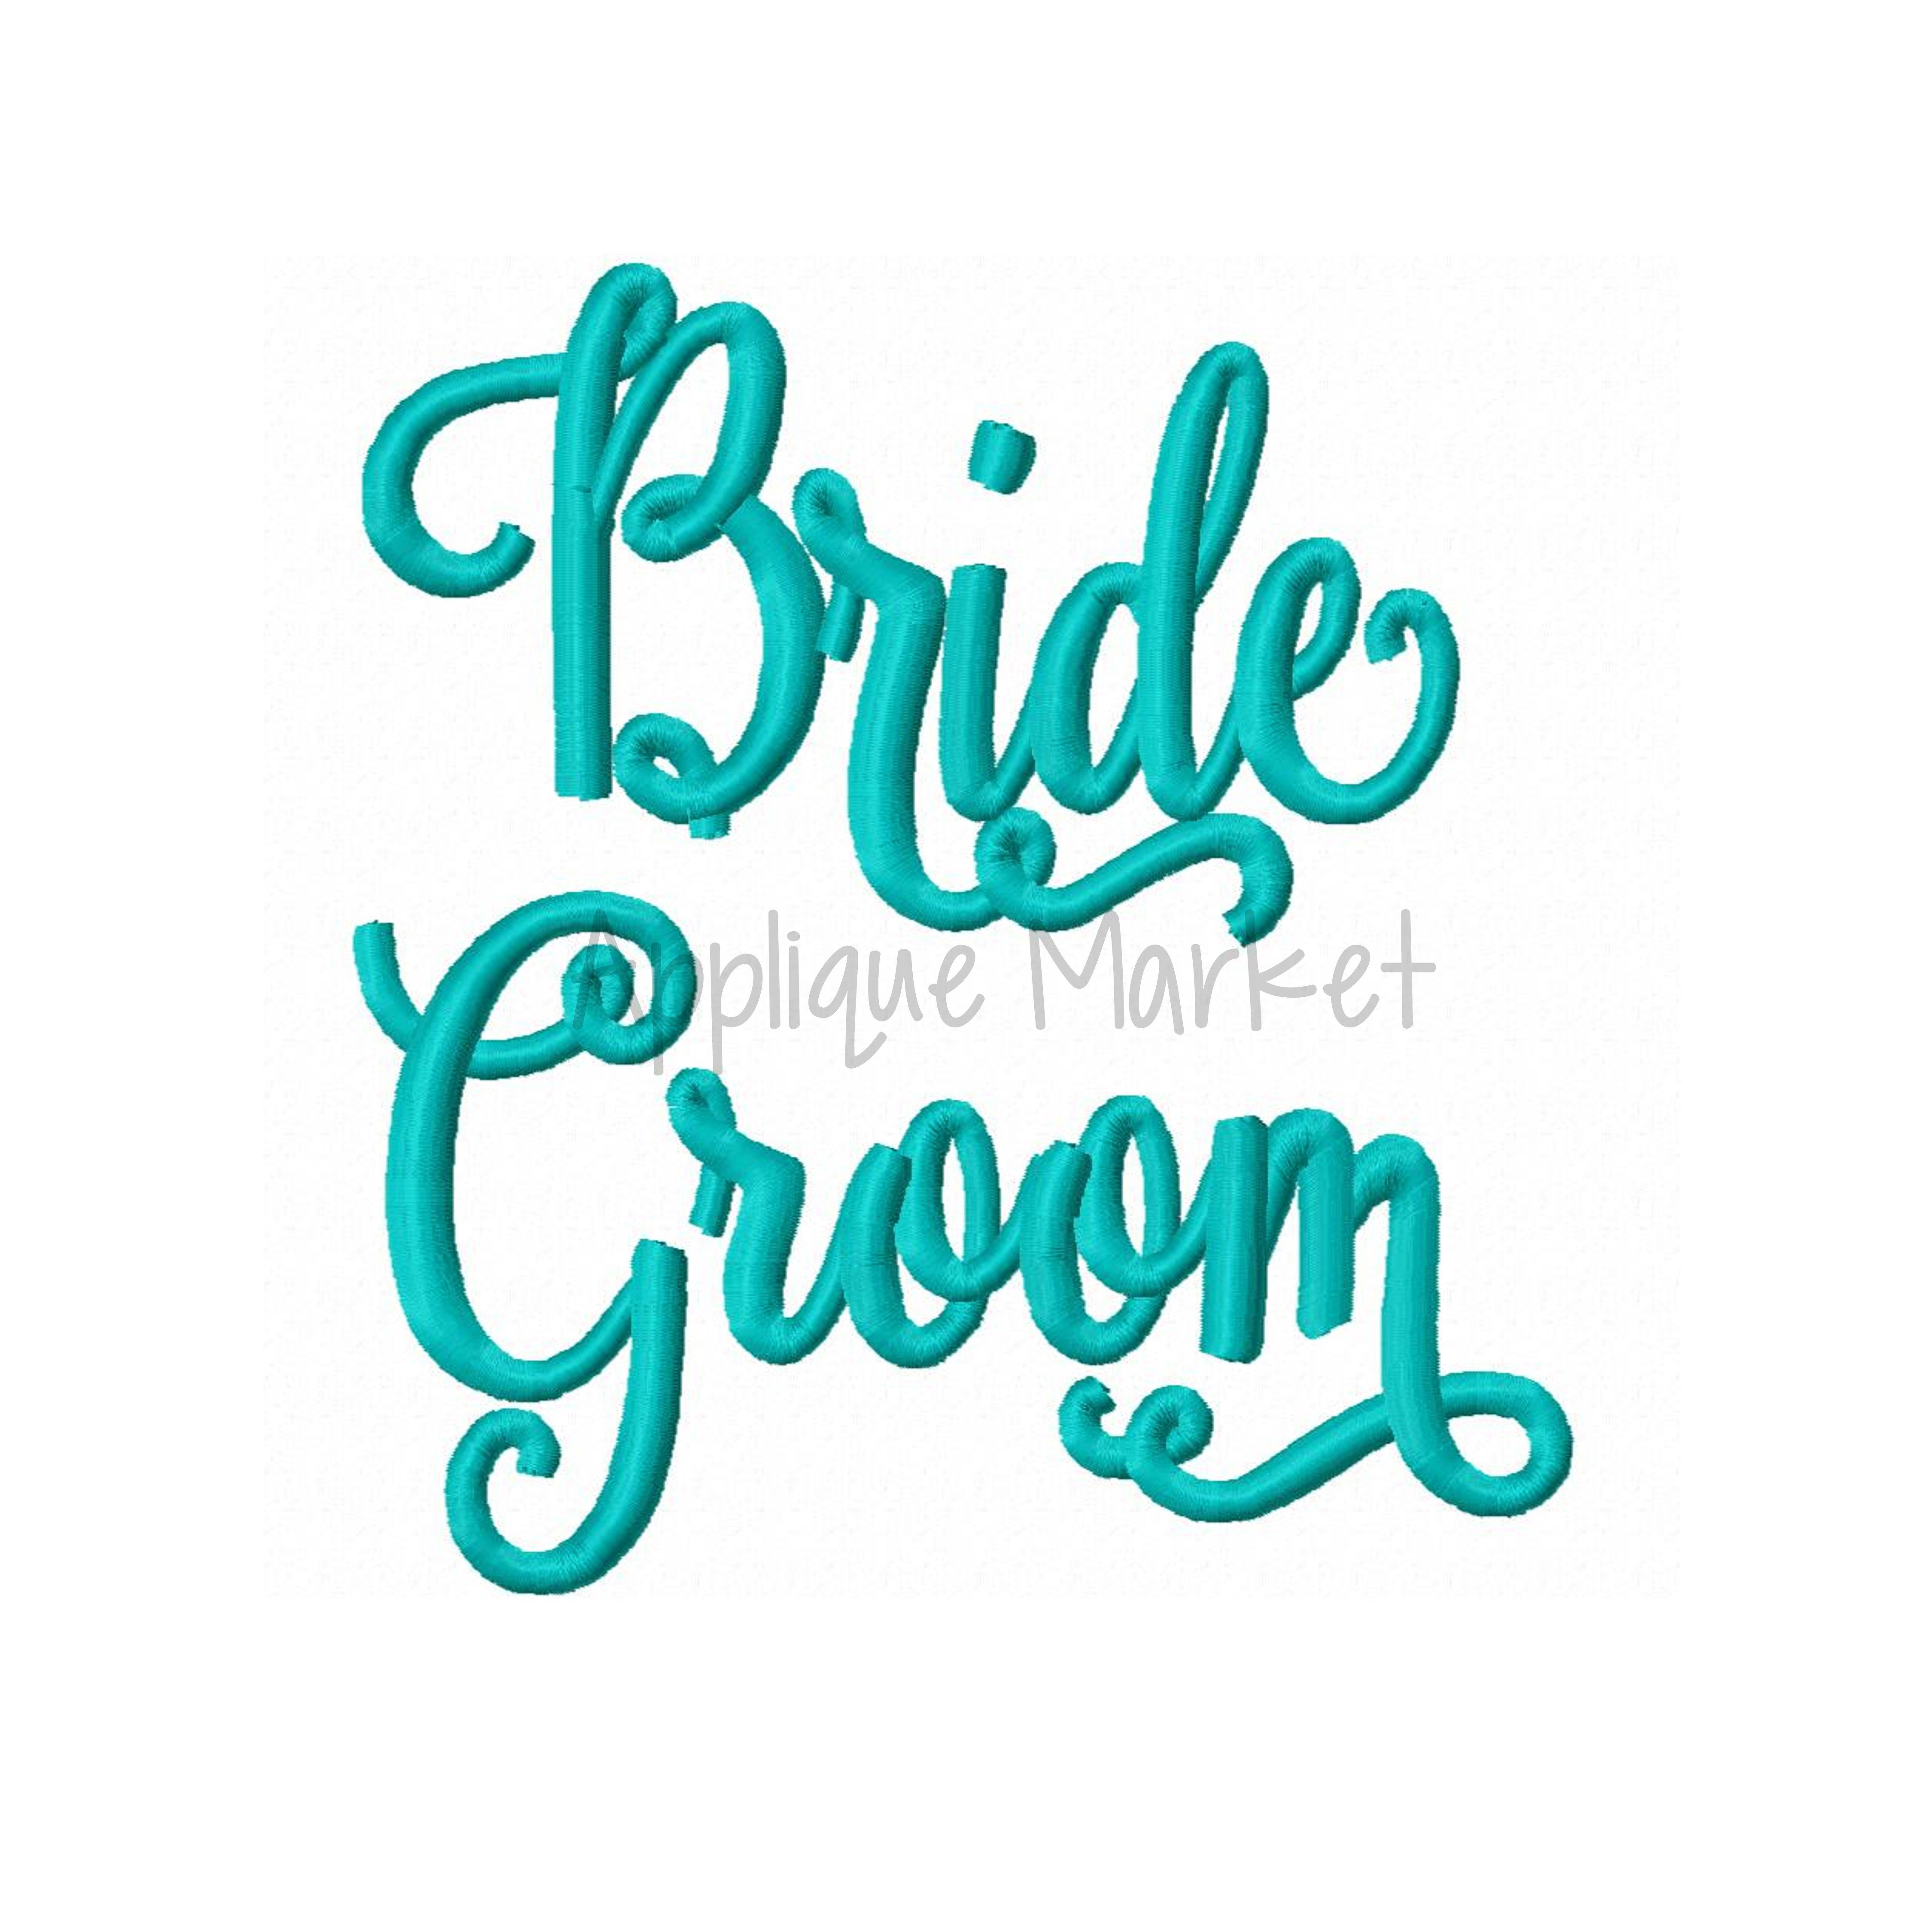 Personalize your home with this set of embroidery design words. This ...